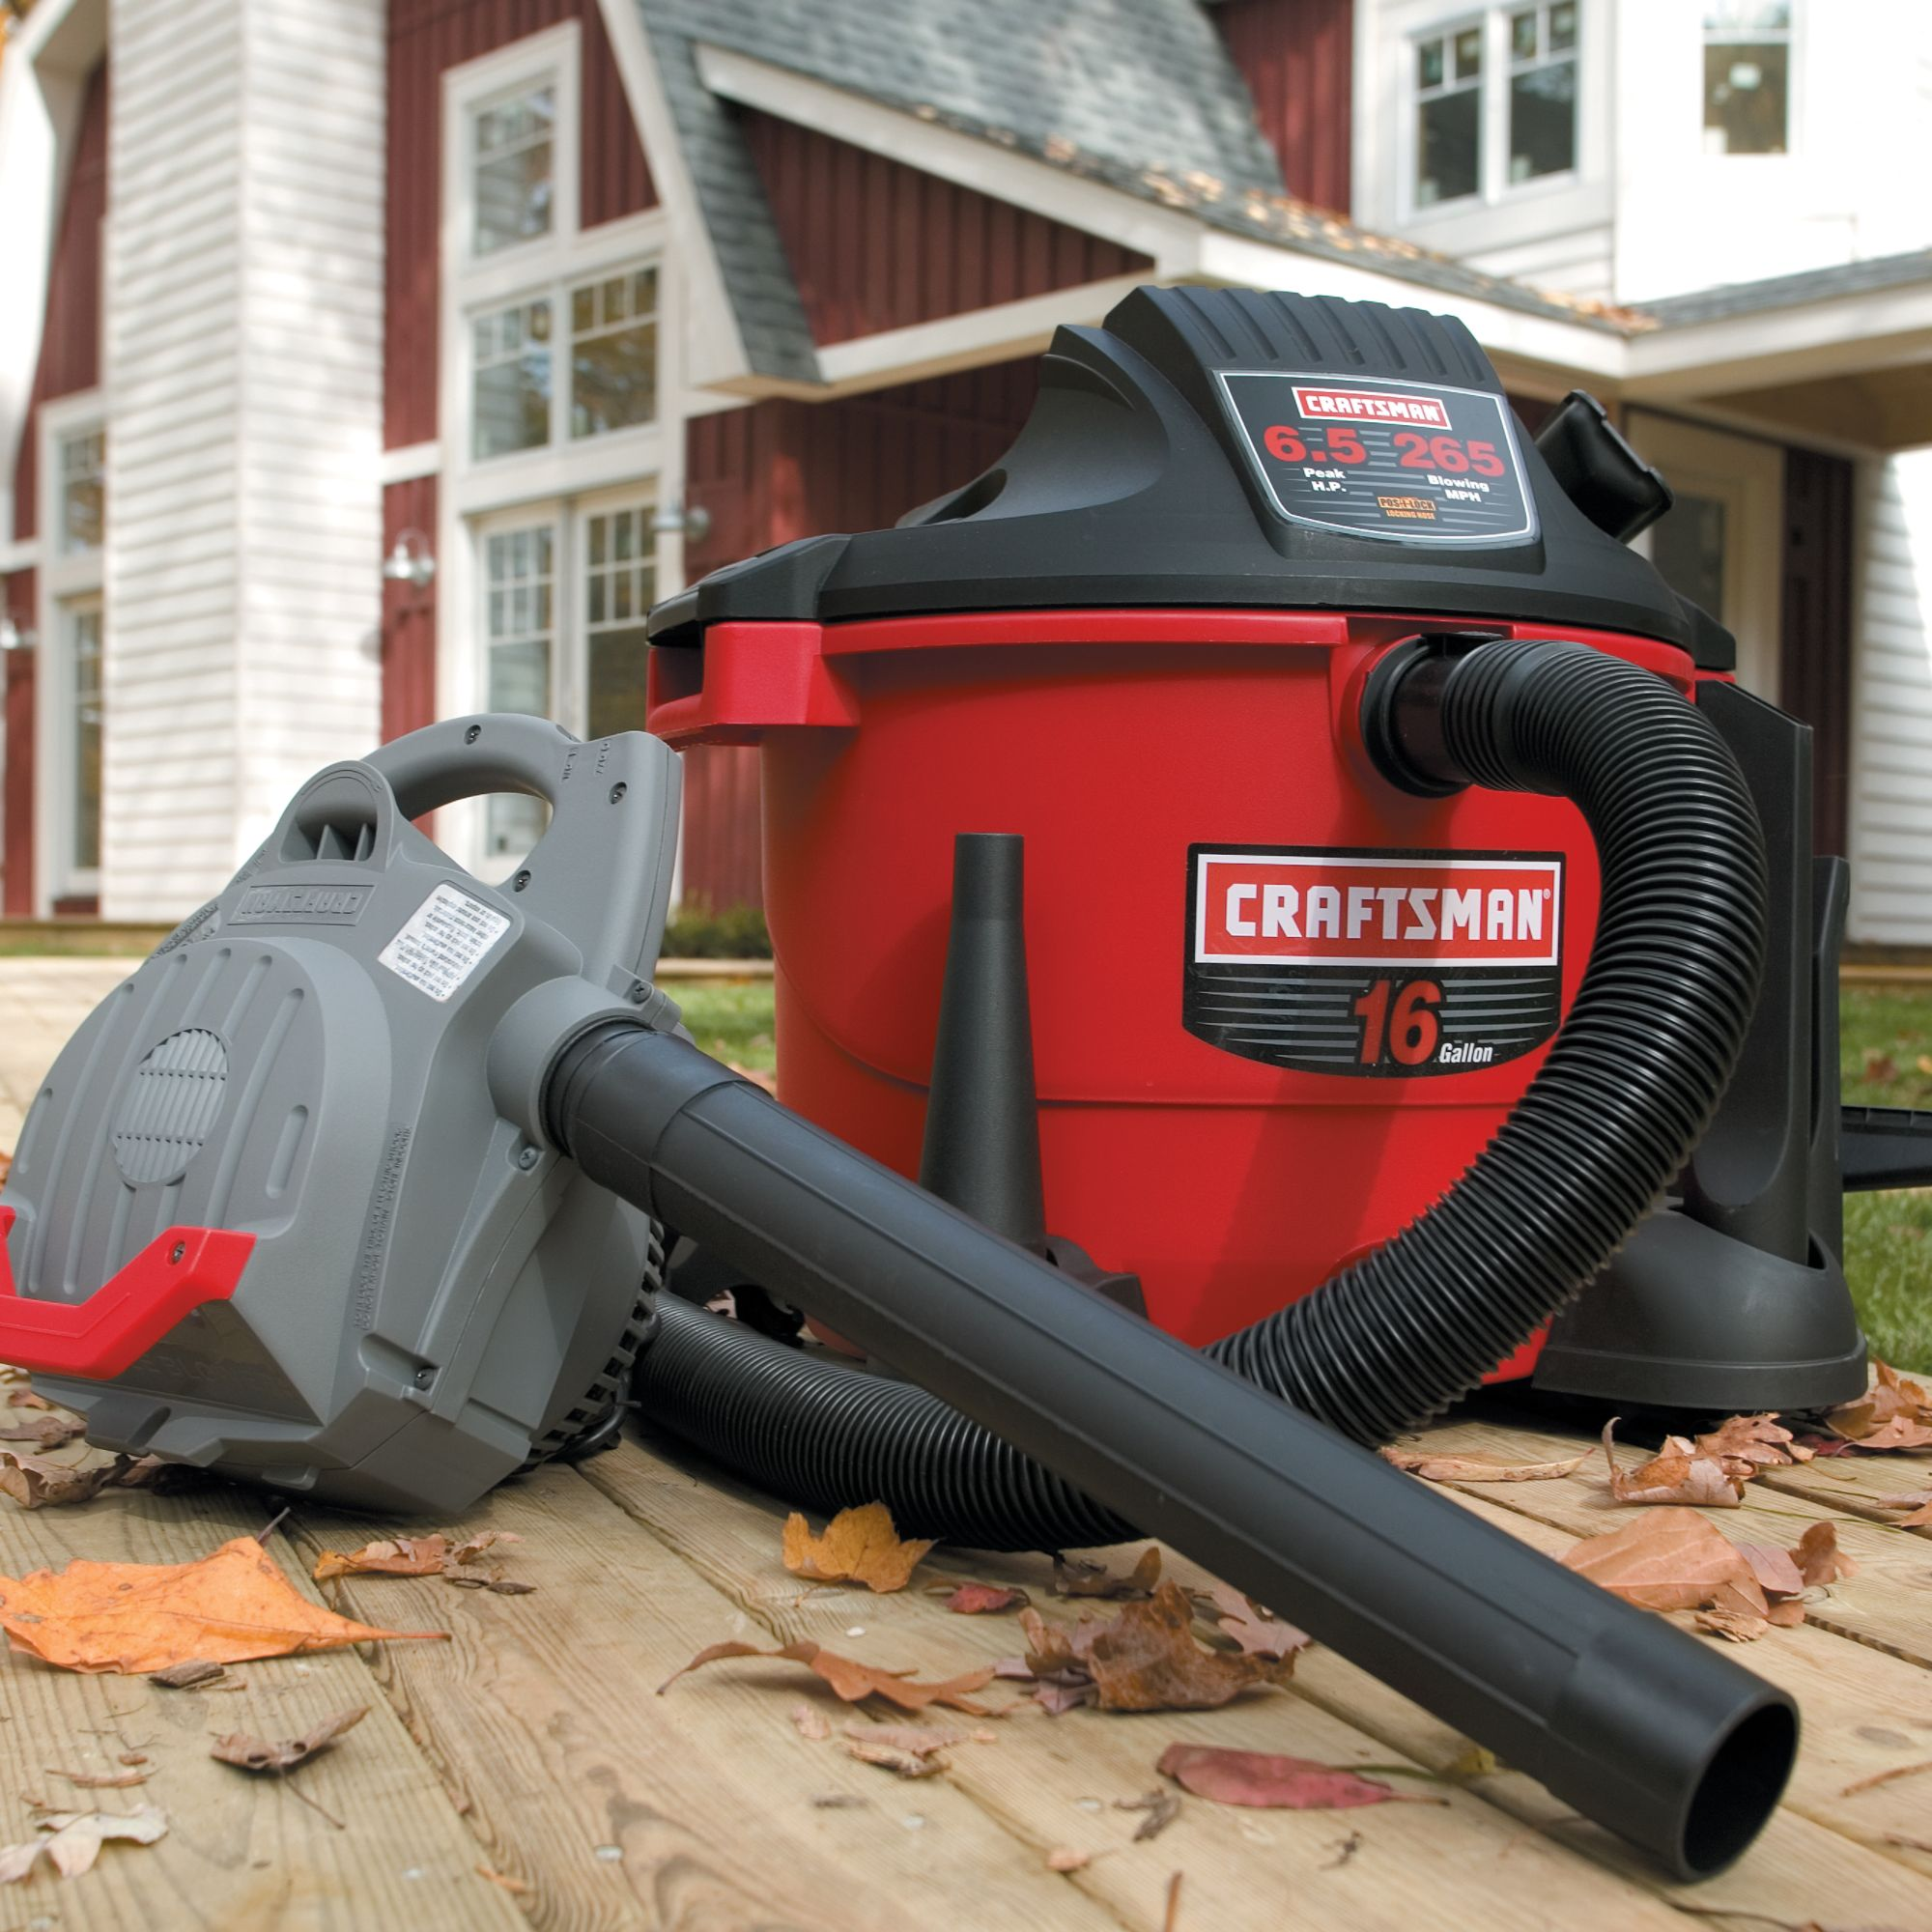 Craftsman 16-gal 6.5-peak hp Wet/Dry Vac with Detachable 265 mph Blower